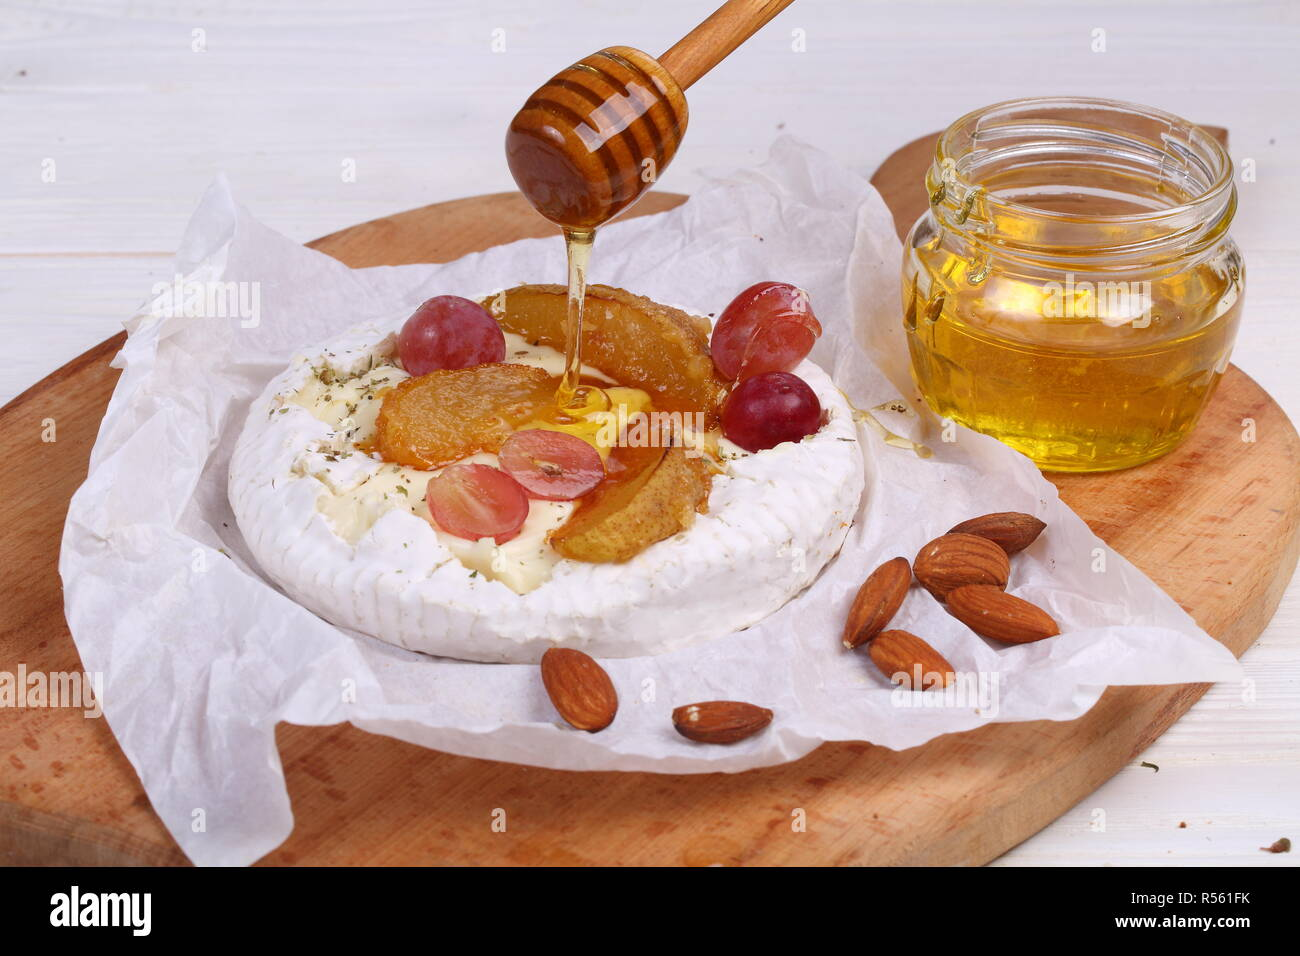 Camembert with fruit, honey and pear - Stock Image